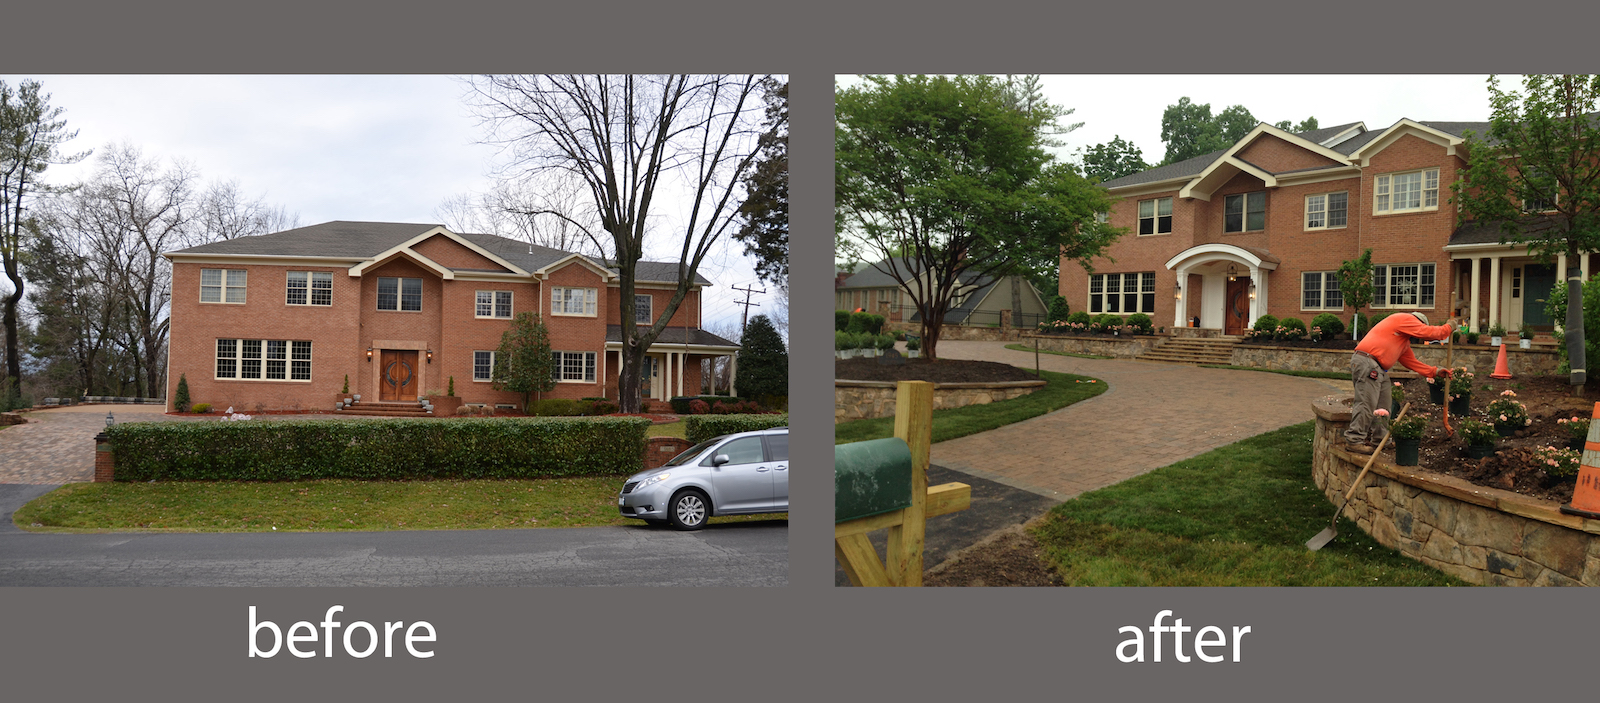 before & after front yard landscape design cleaned viriginia